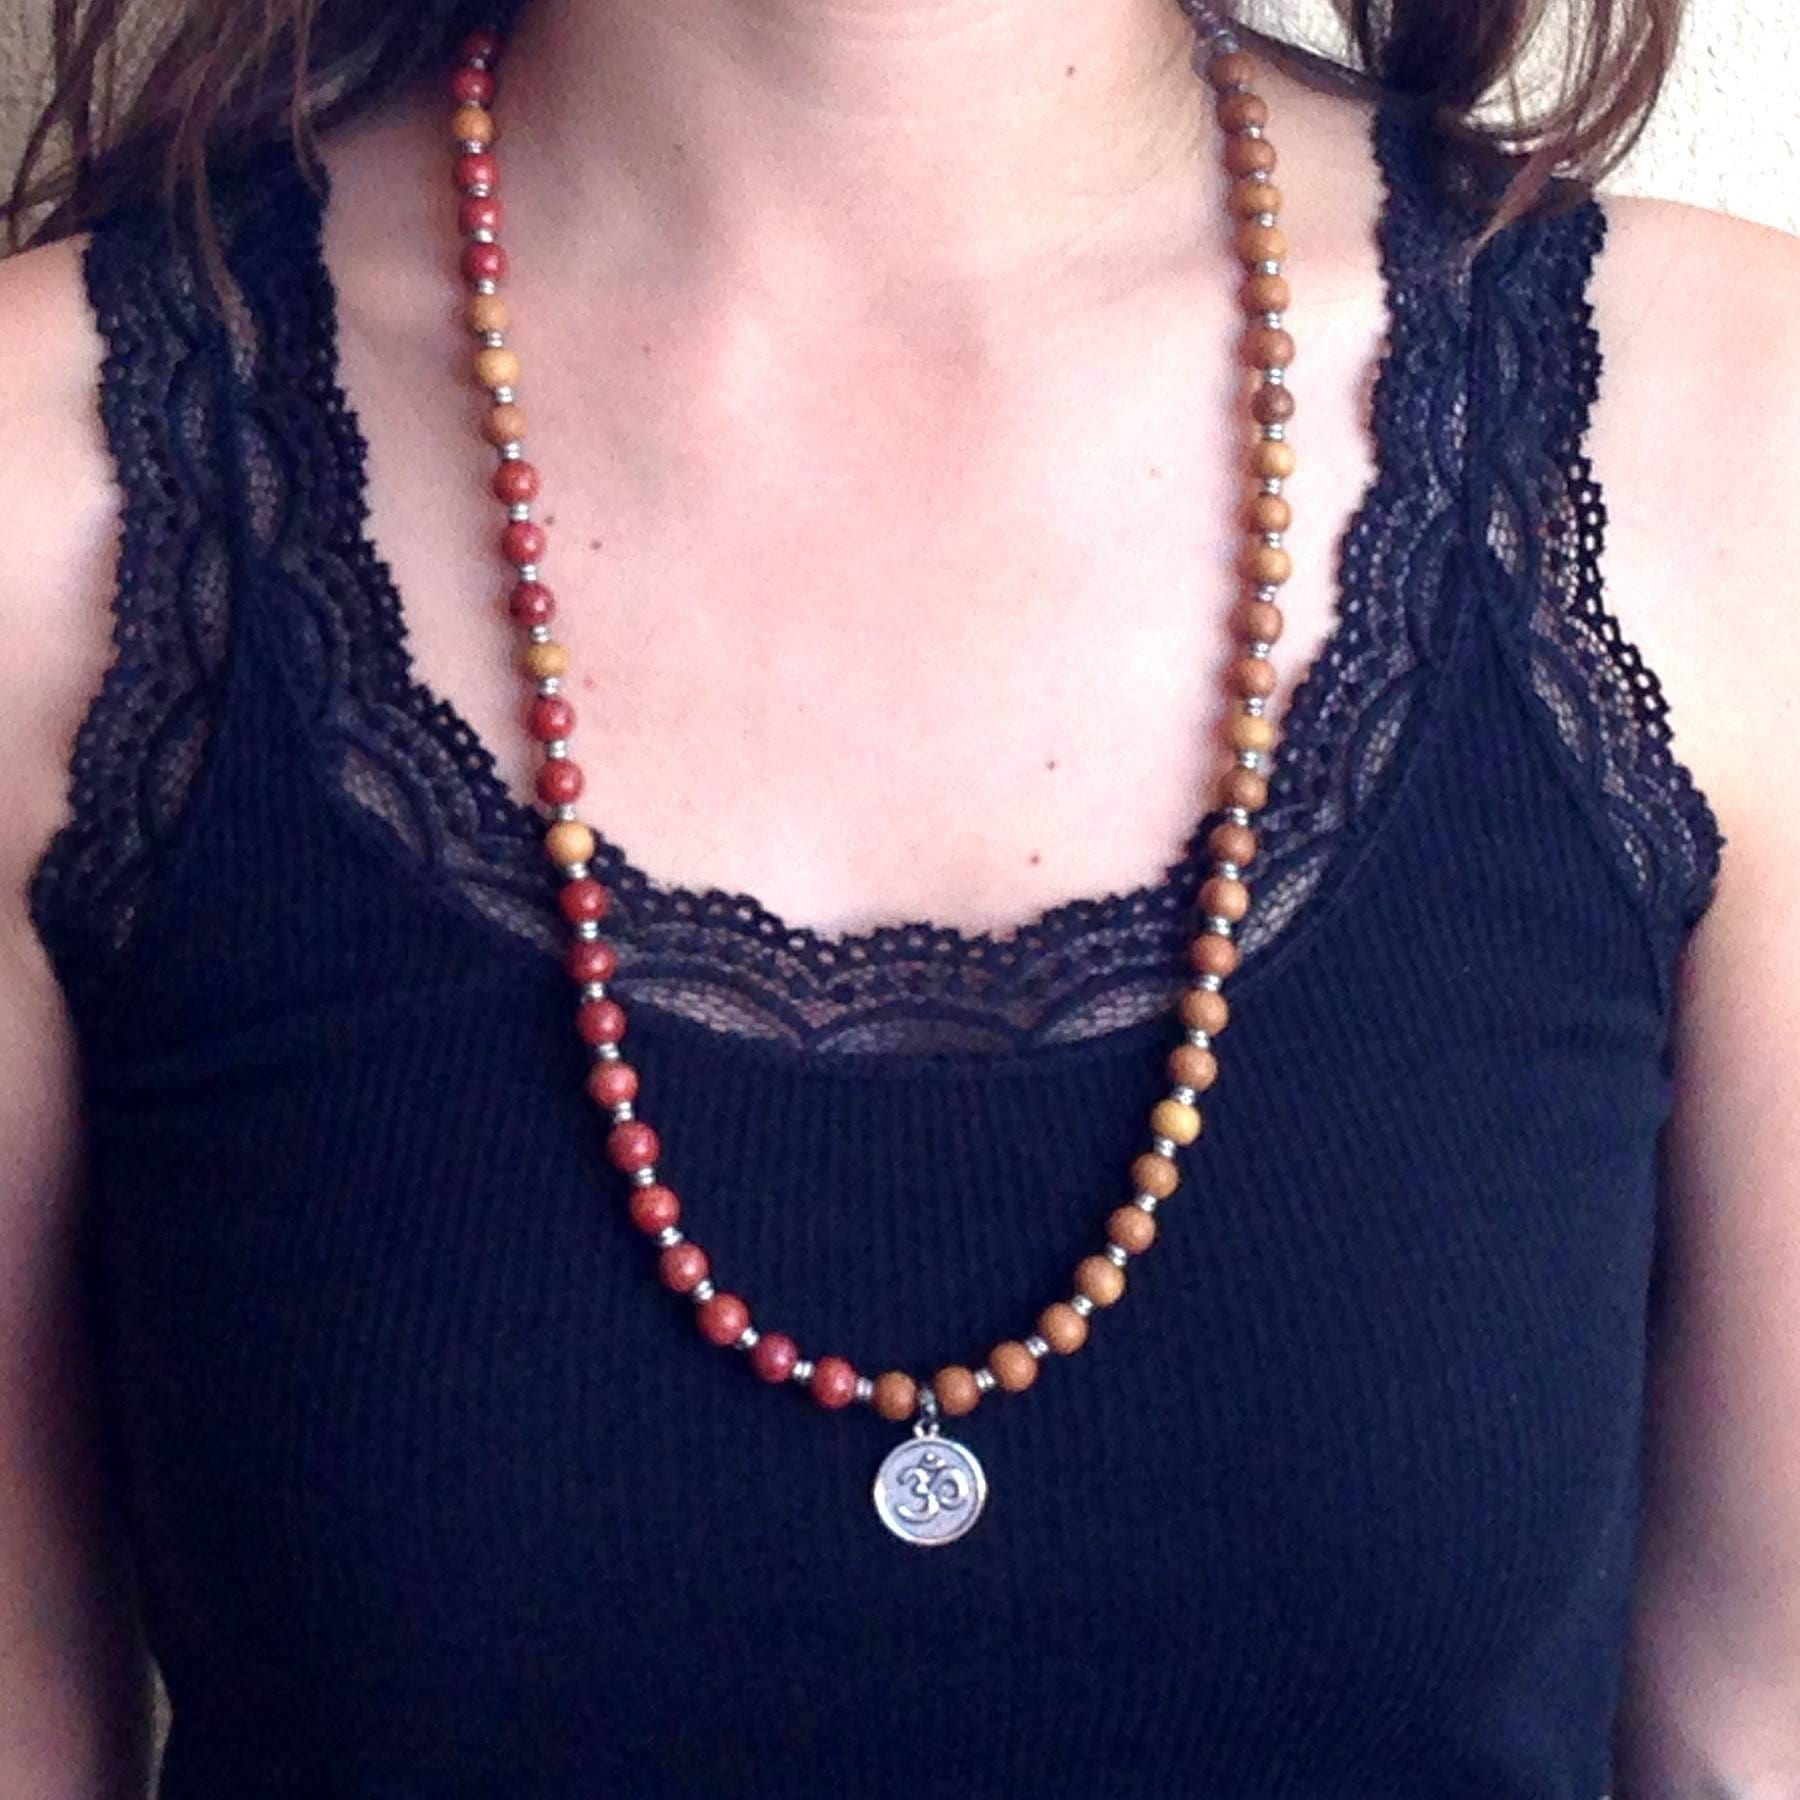 Bracelets - Healing And Grounding, Sandalwood And Red Jasper 54 Bead Mala Necklace Or Bracelet